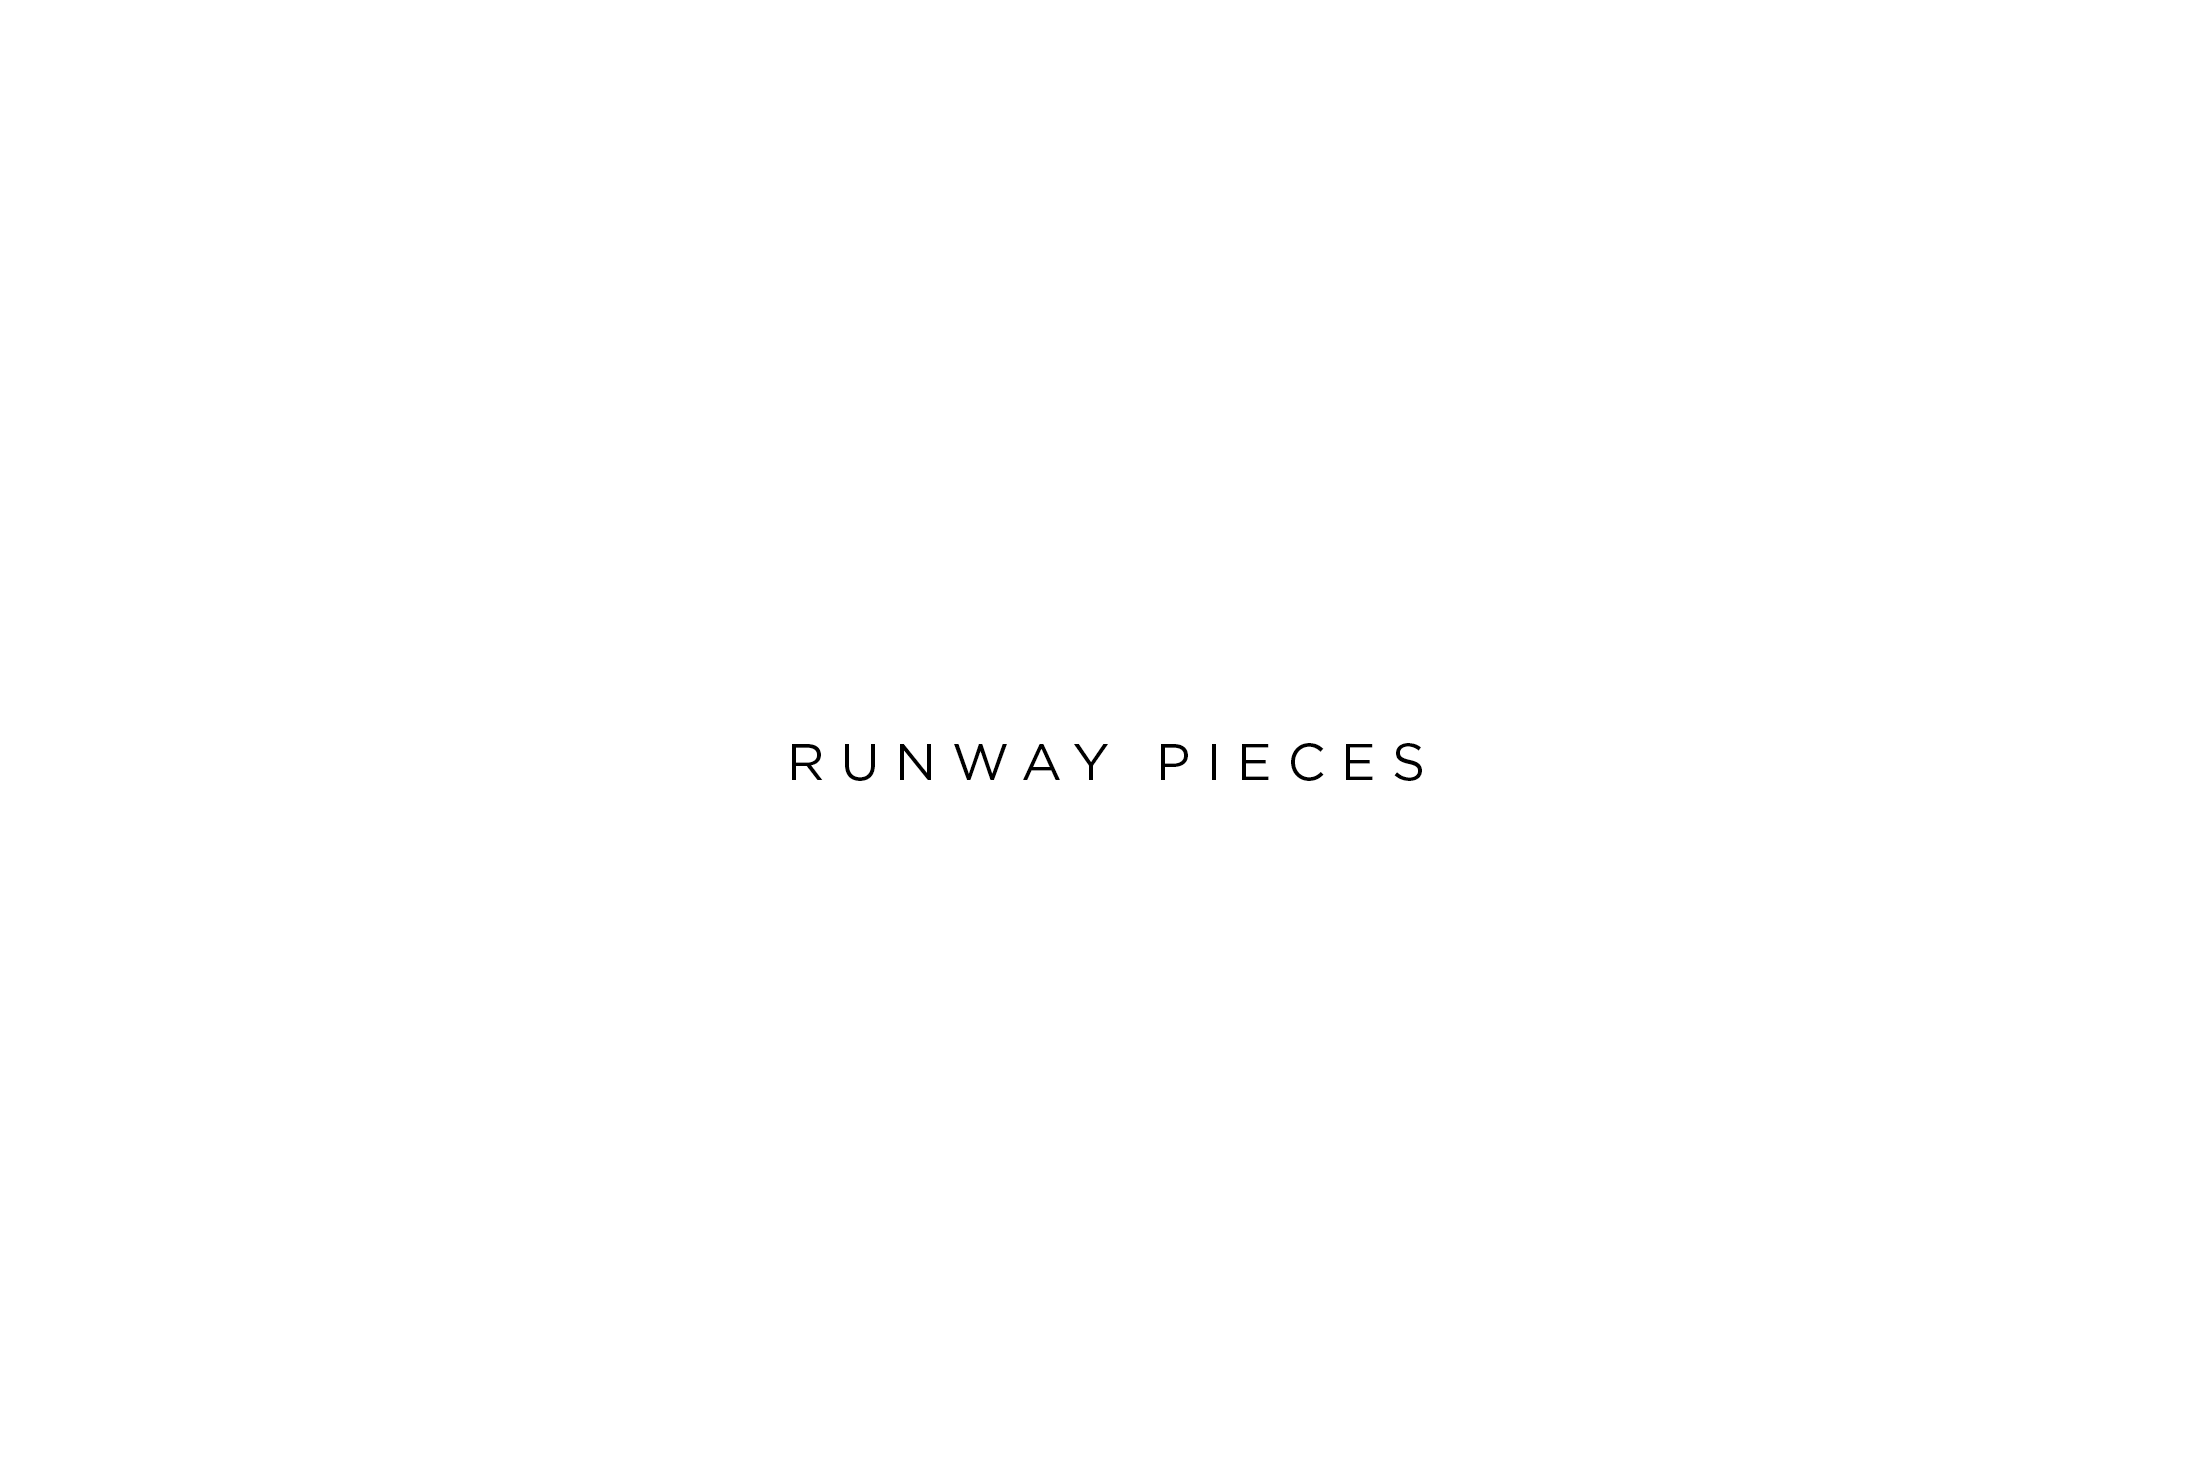 Runway pieces 2